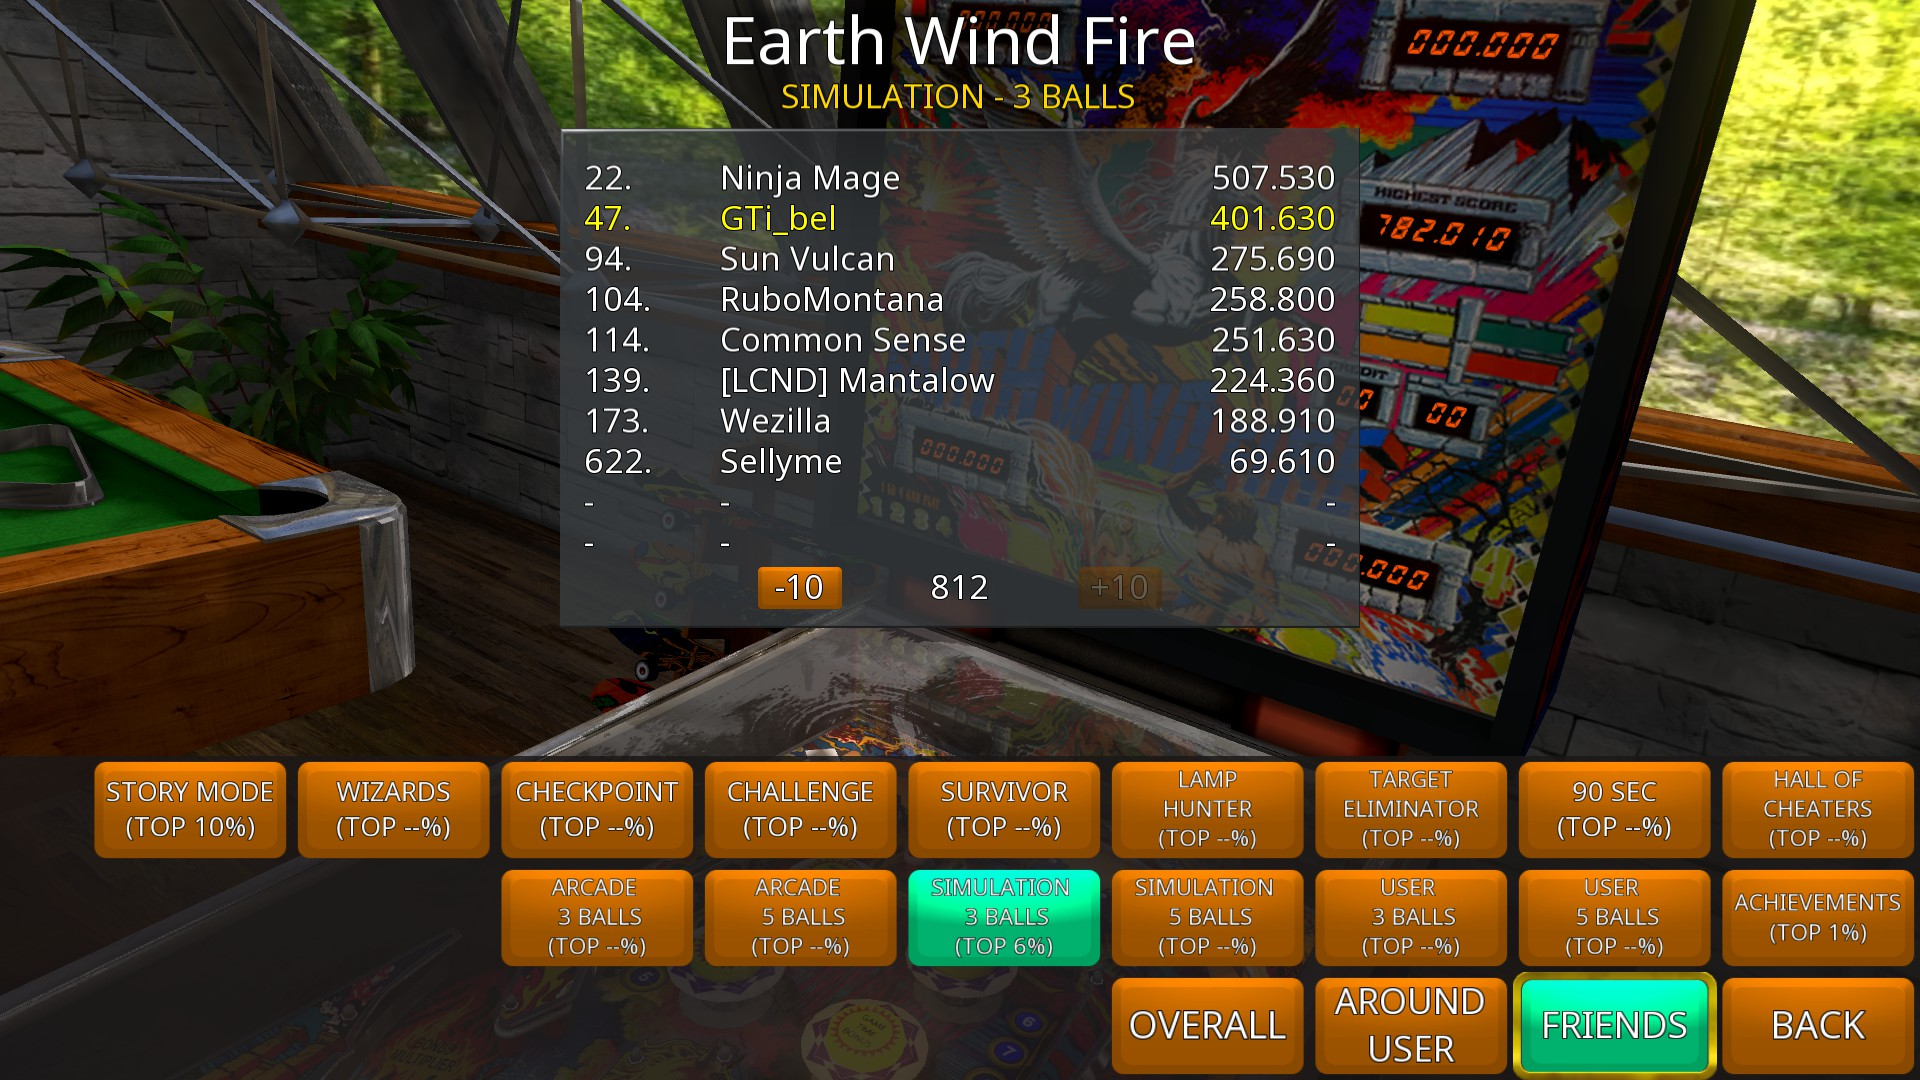 GTibel: Zaccaria Pinball: Earth Wind Fire [3 balls] (PC) 401,630 points on 2018-09-26 09:18:37